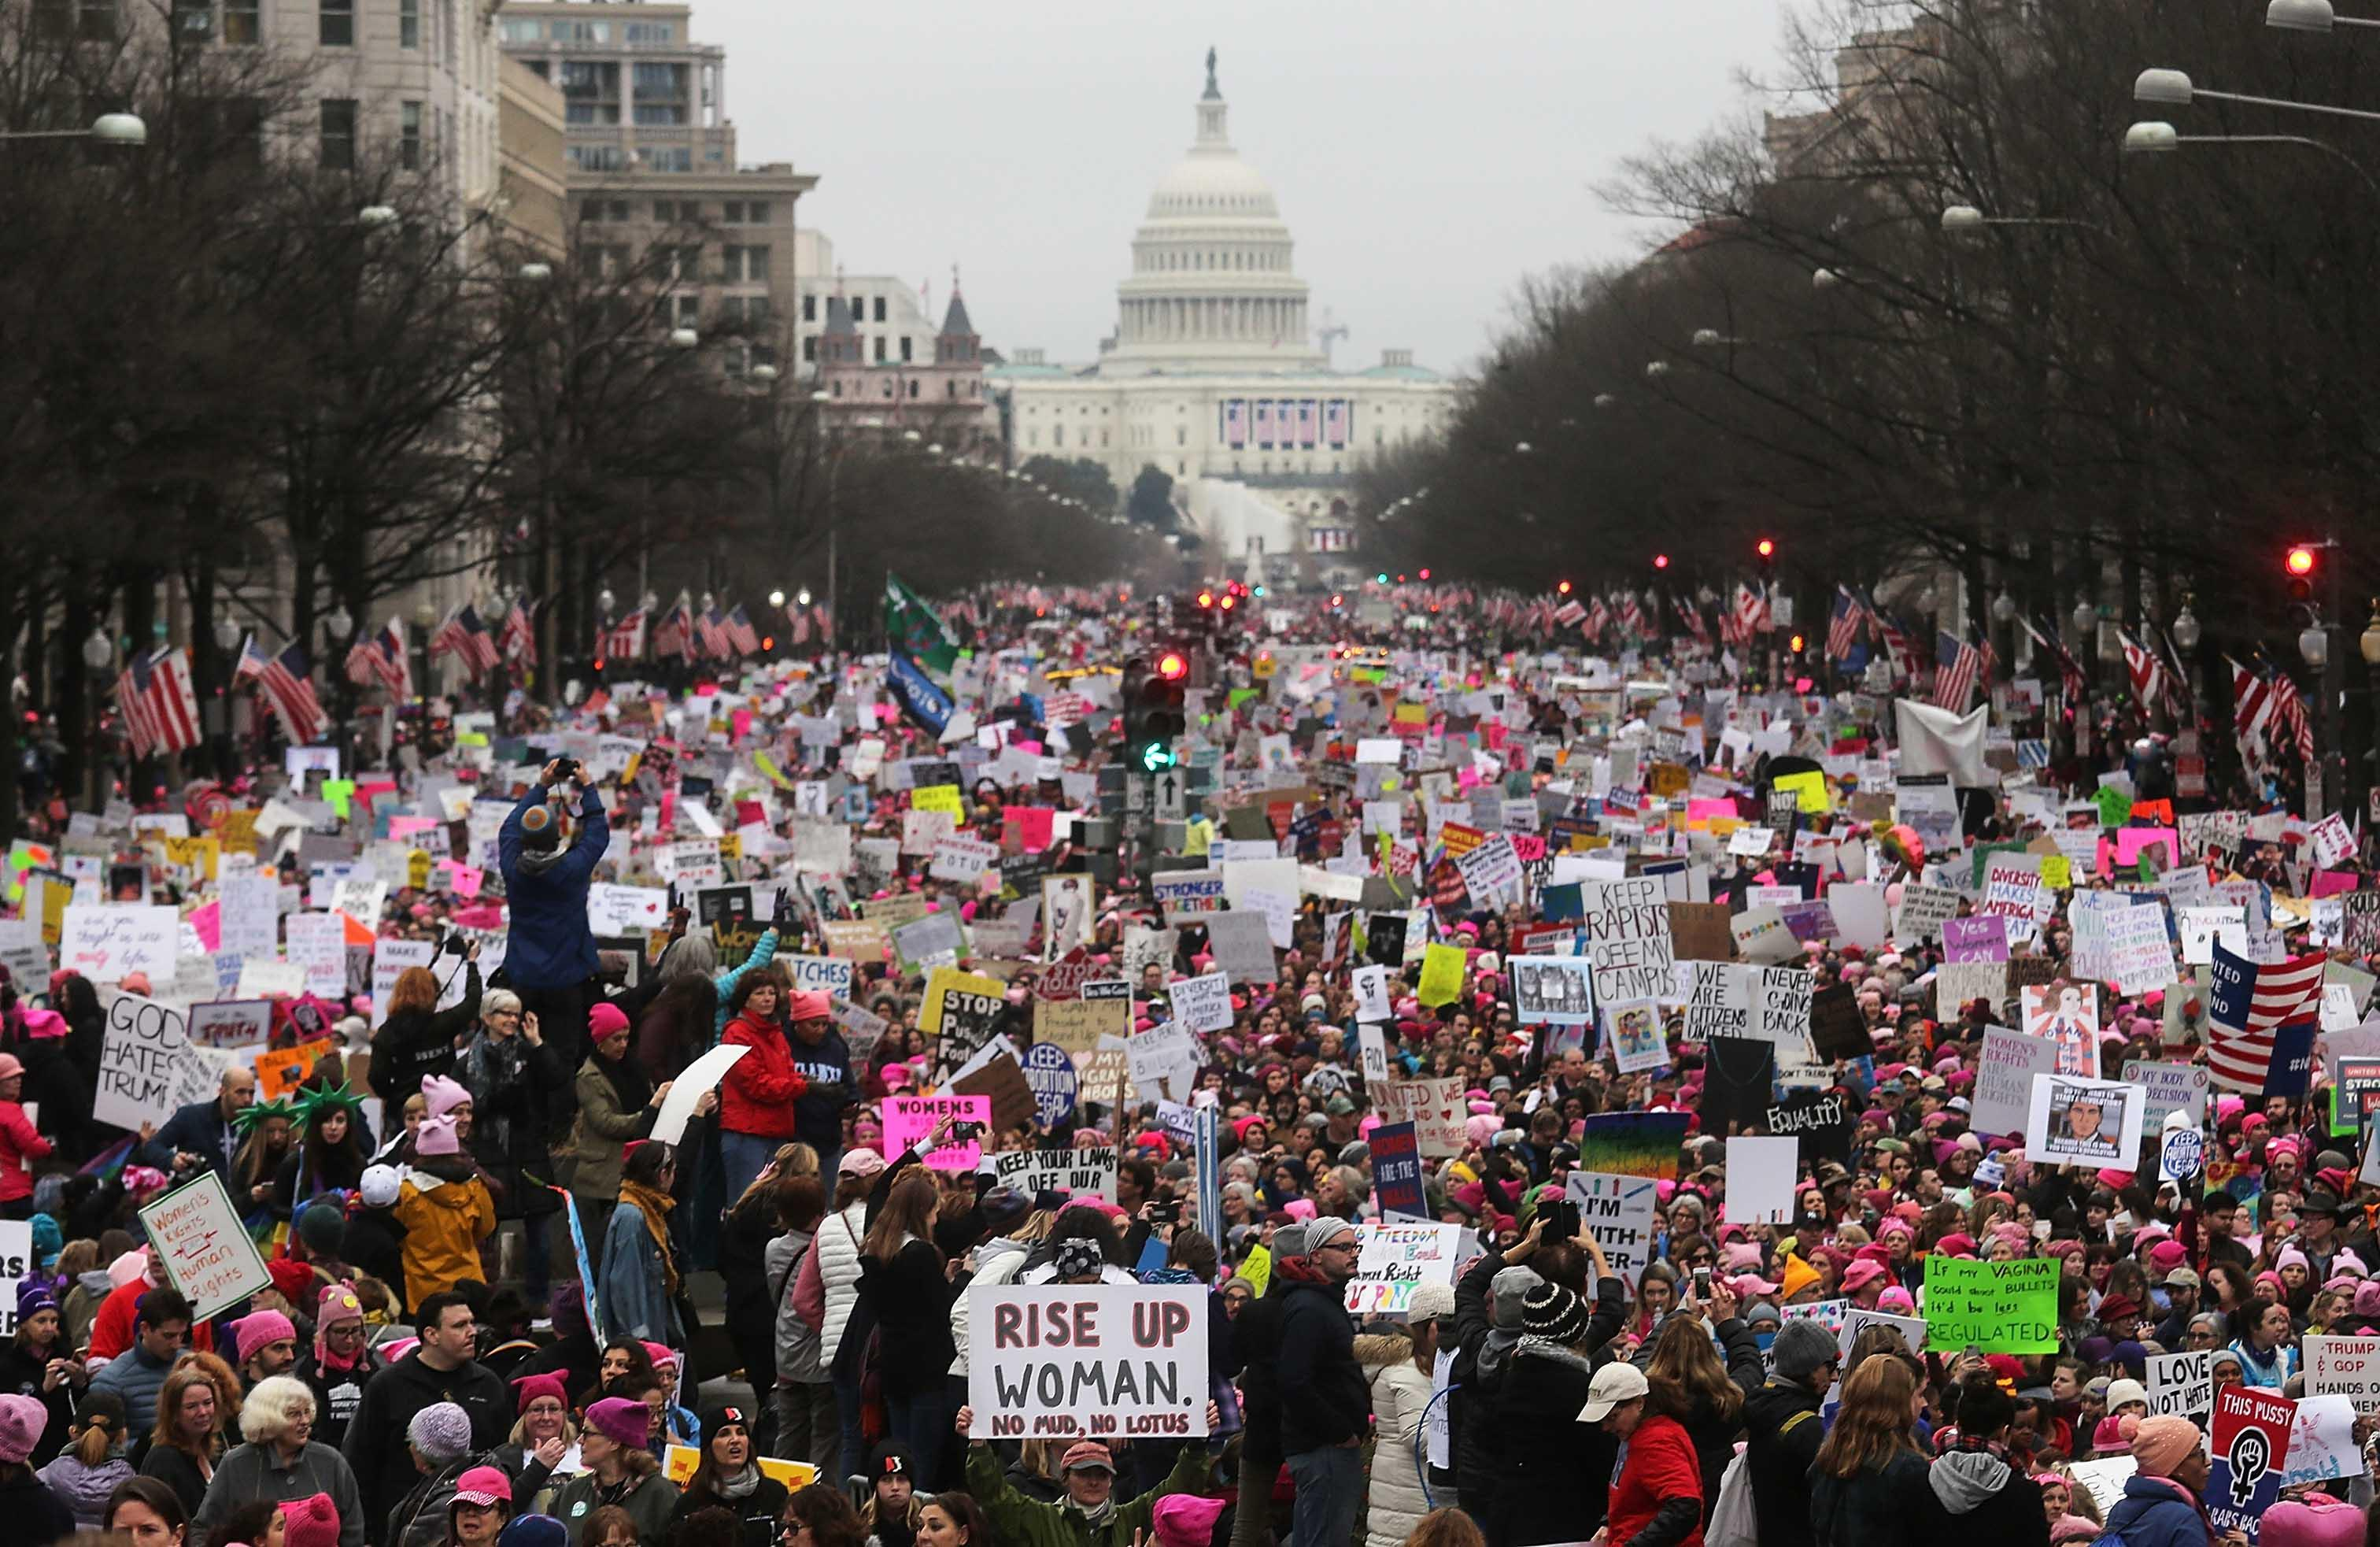 National Archives sorry for blurring anti-Trump signs in Women's March photo